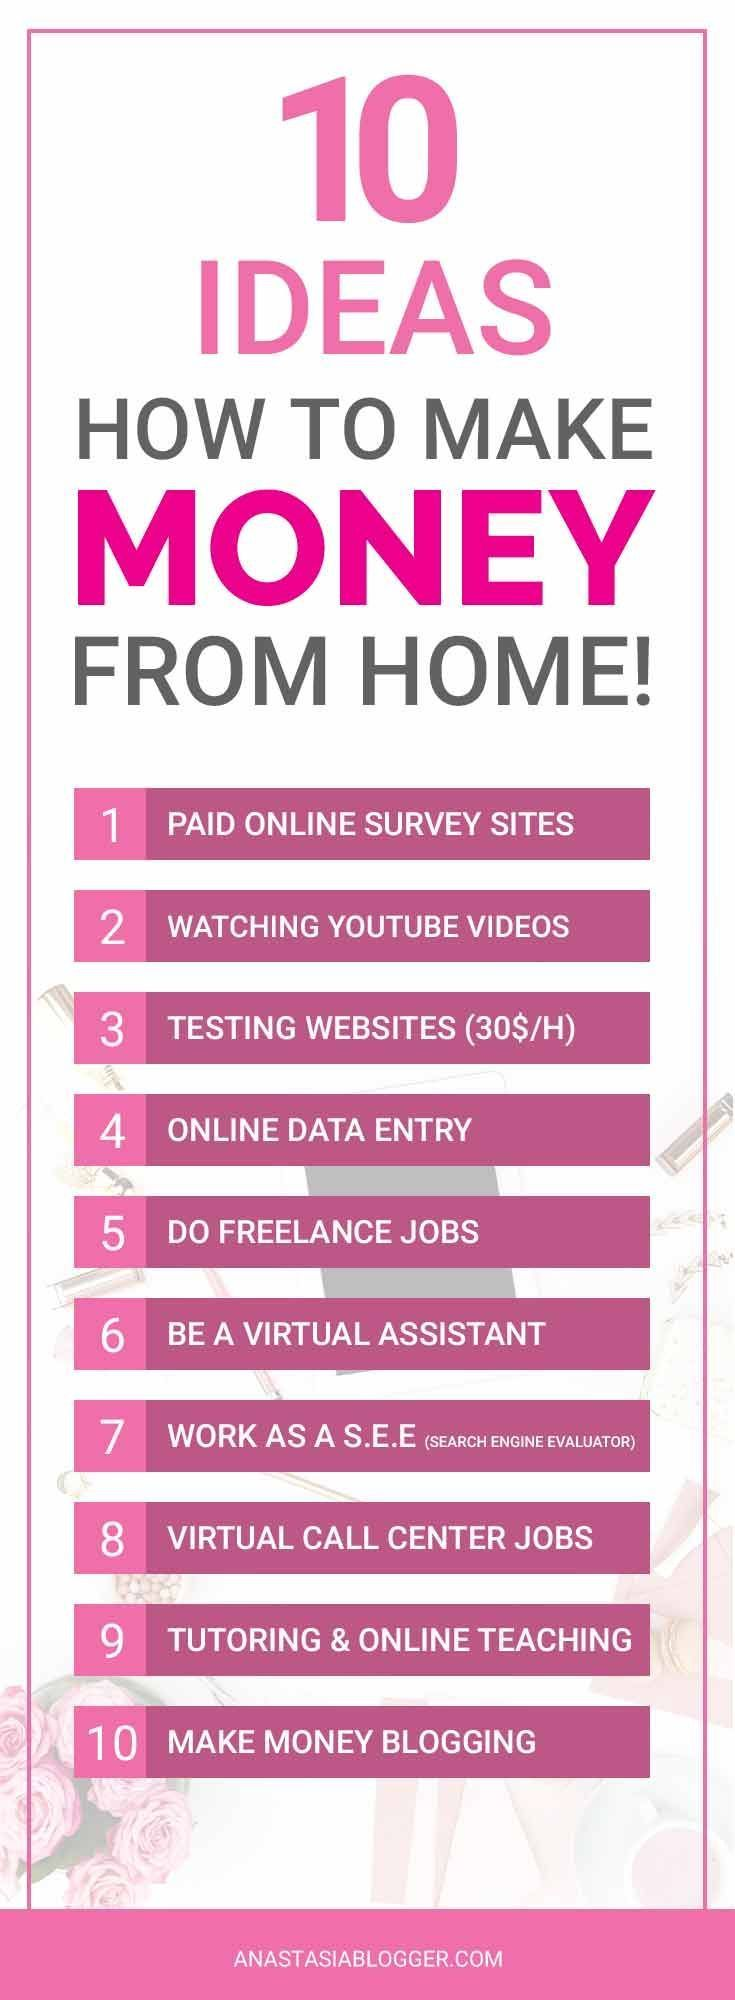 How does she make extra $1000 a moth online? 10 ideas how to make money from home - make money fast, make money online, make money ideas, make money blogging, as a virtual assistant, via paid online surveys, earn money online in every possible way!